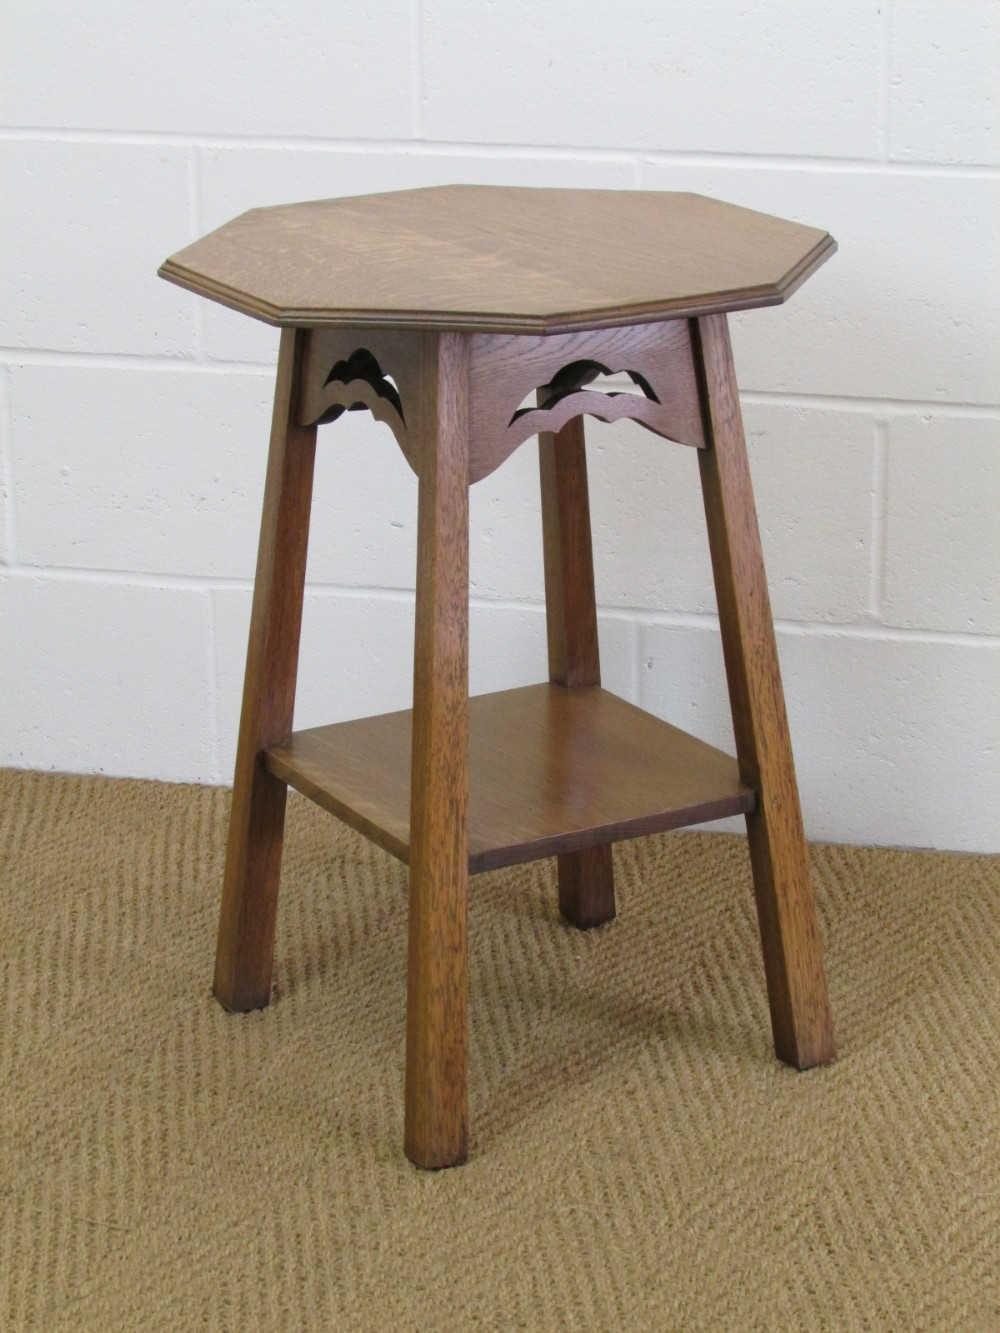 Ordinaire Arts Crafts Oak Occasional Side Table 278034 Ingantiques Co Uk